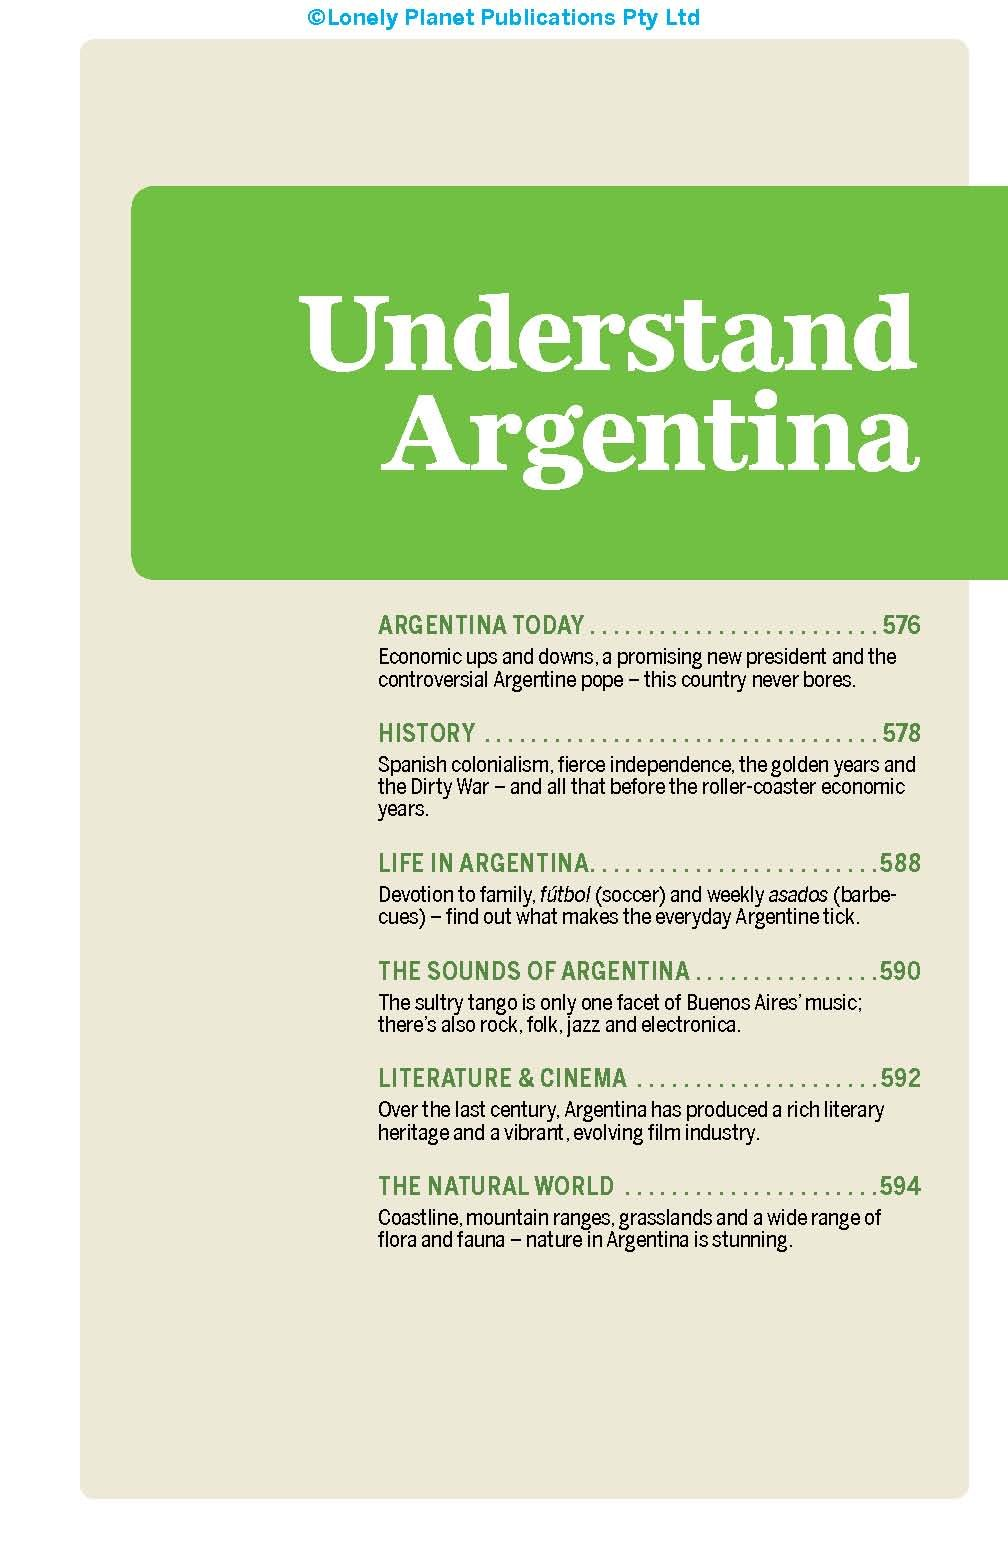 Lonely Planet Argentina 10th Ed : 10th Edition: Lonely